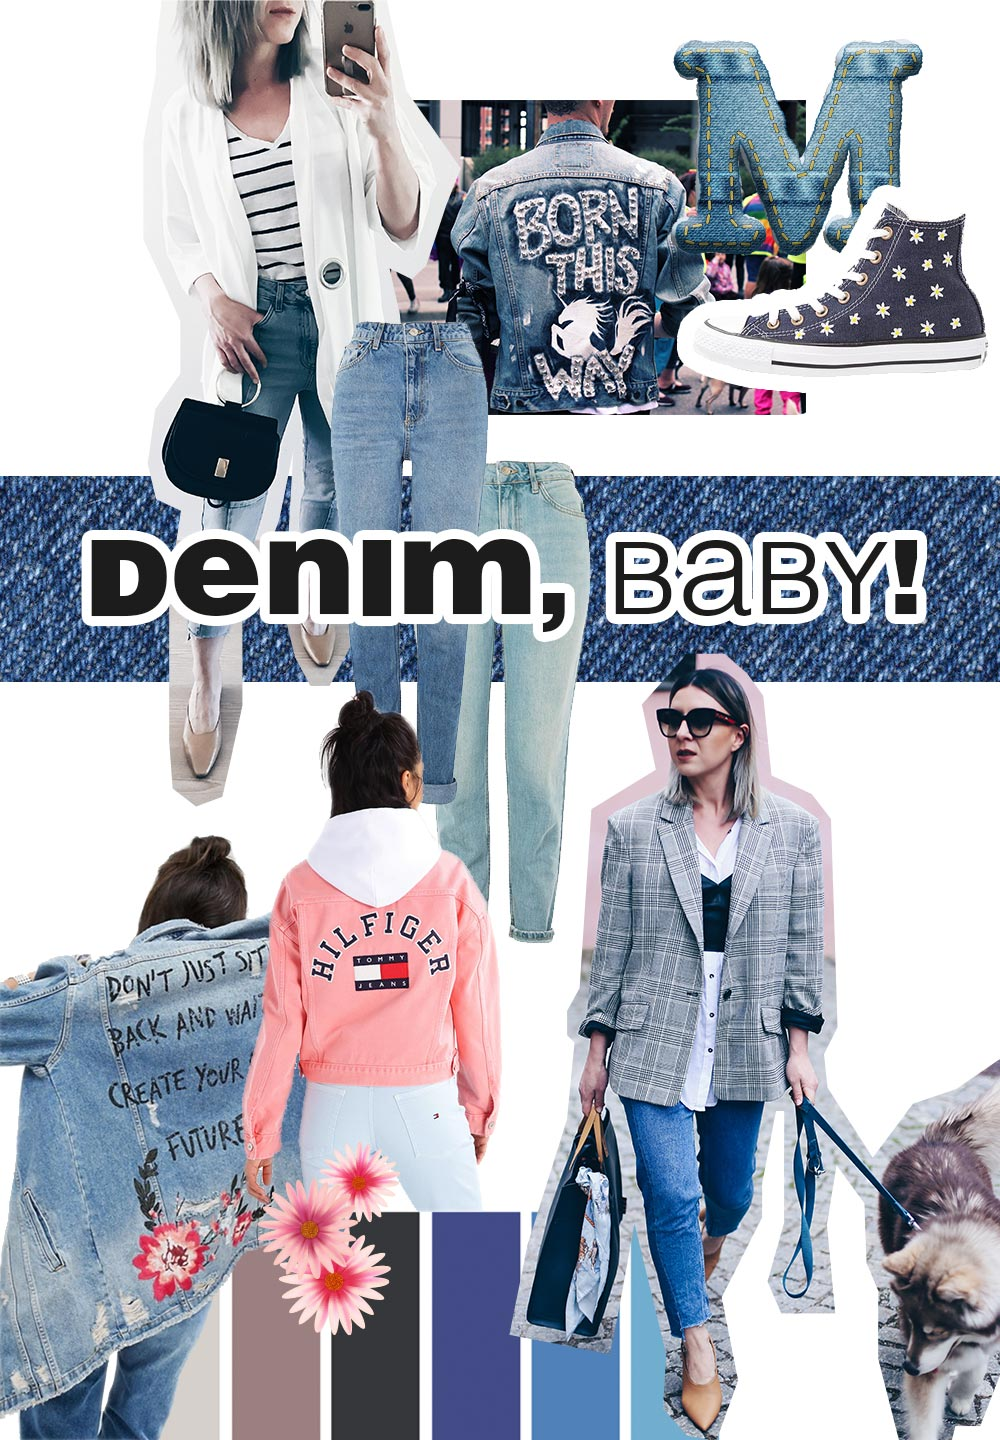 Fashion Mood Board Denim, Trend 2017, Fashion Trends Moodboard, Modetrends Inspiration, Style Blog, Modeblog, Fashion Blog, Inspiration, www.whoismocca.com